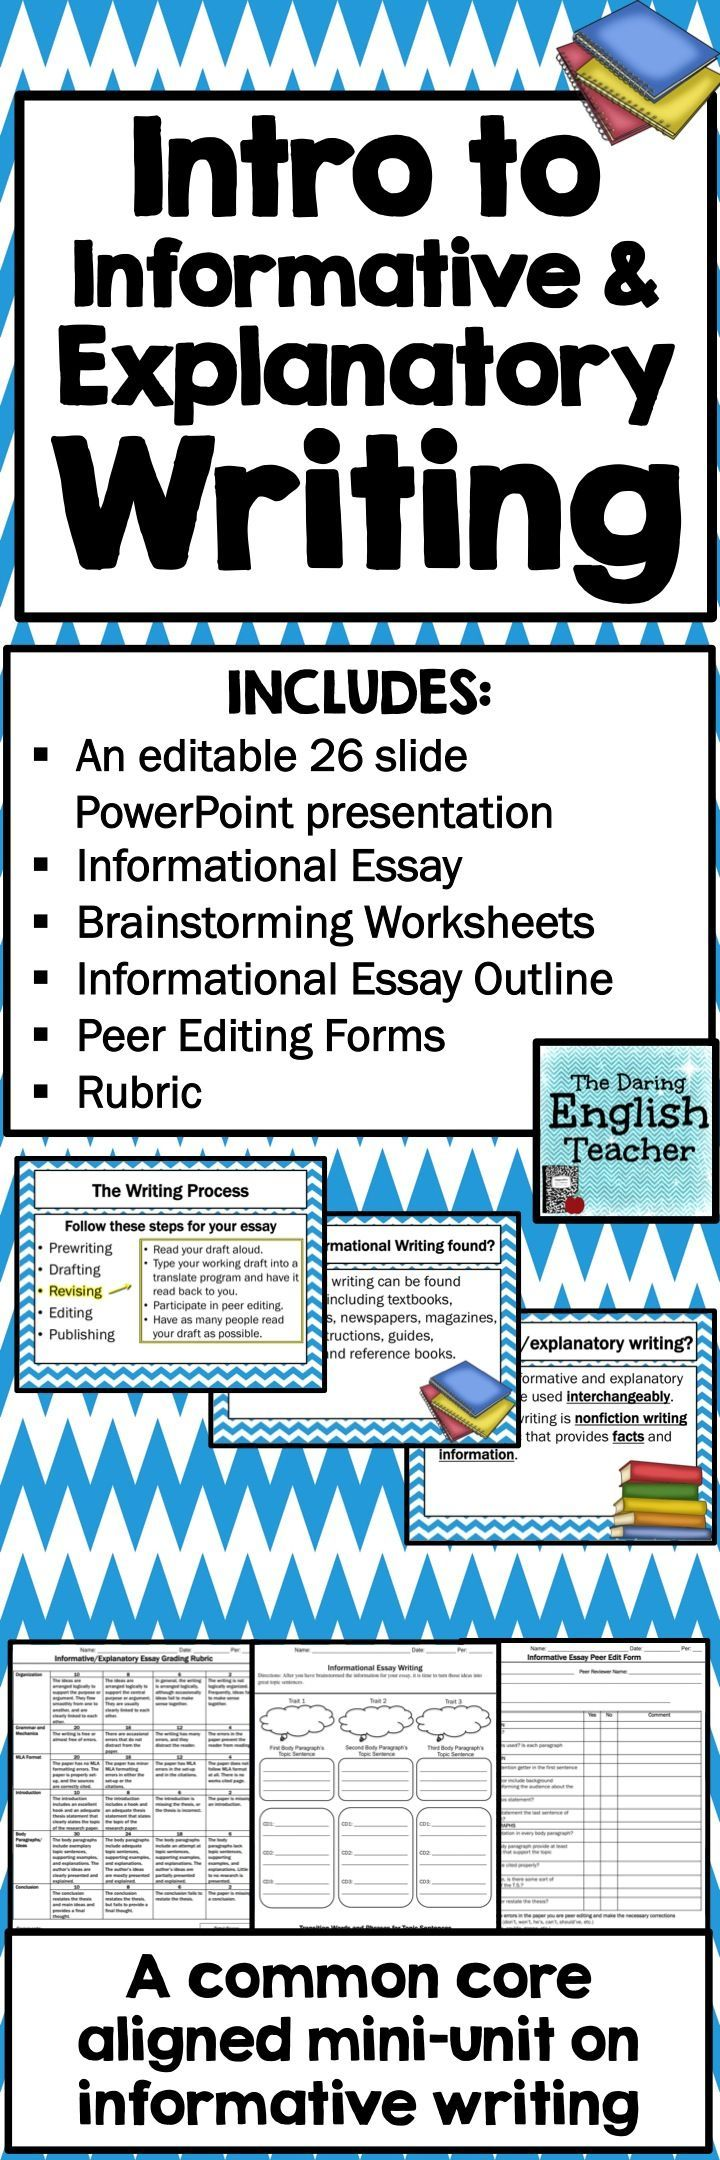 informative essays middle school 100 expository essay topic ideas what kind of expository essay is this this is a great list i'm in middle school and it helps when you have writers block my.